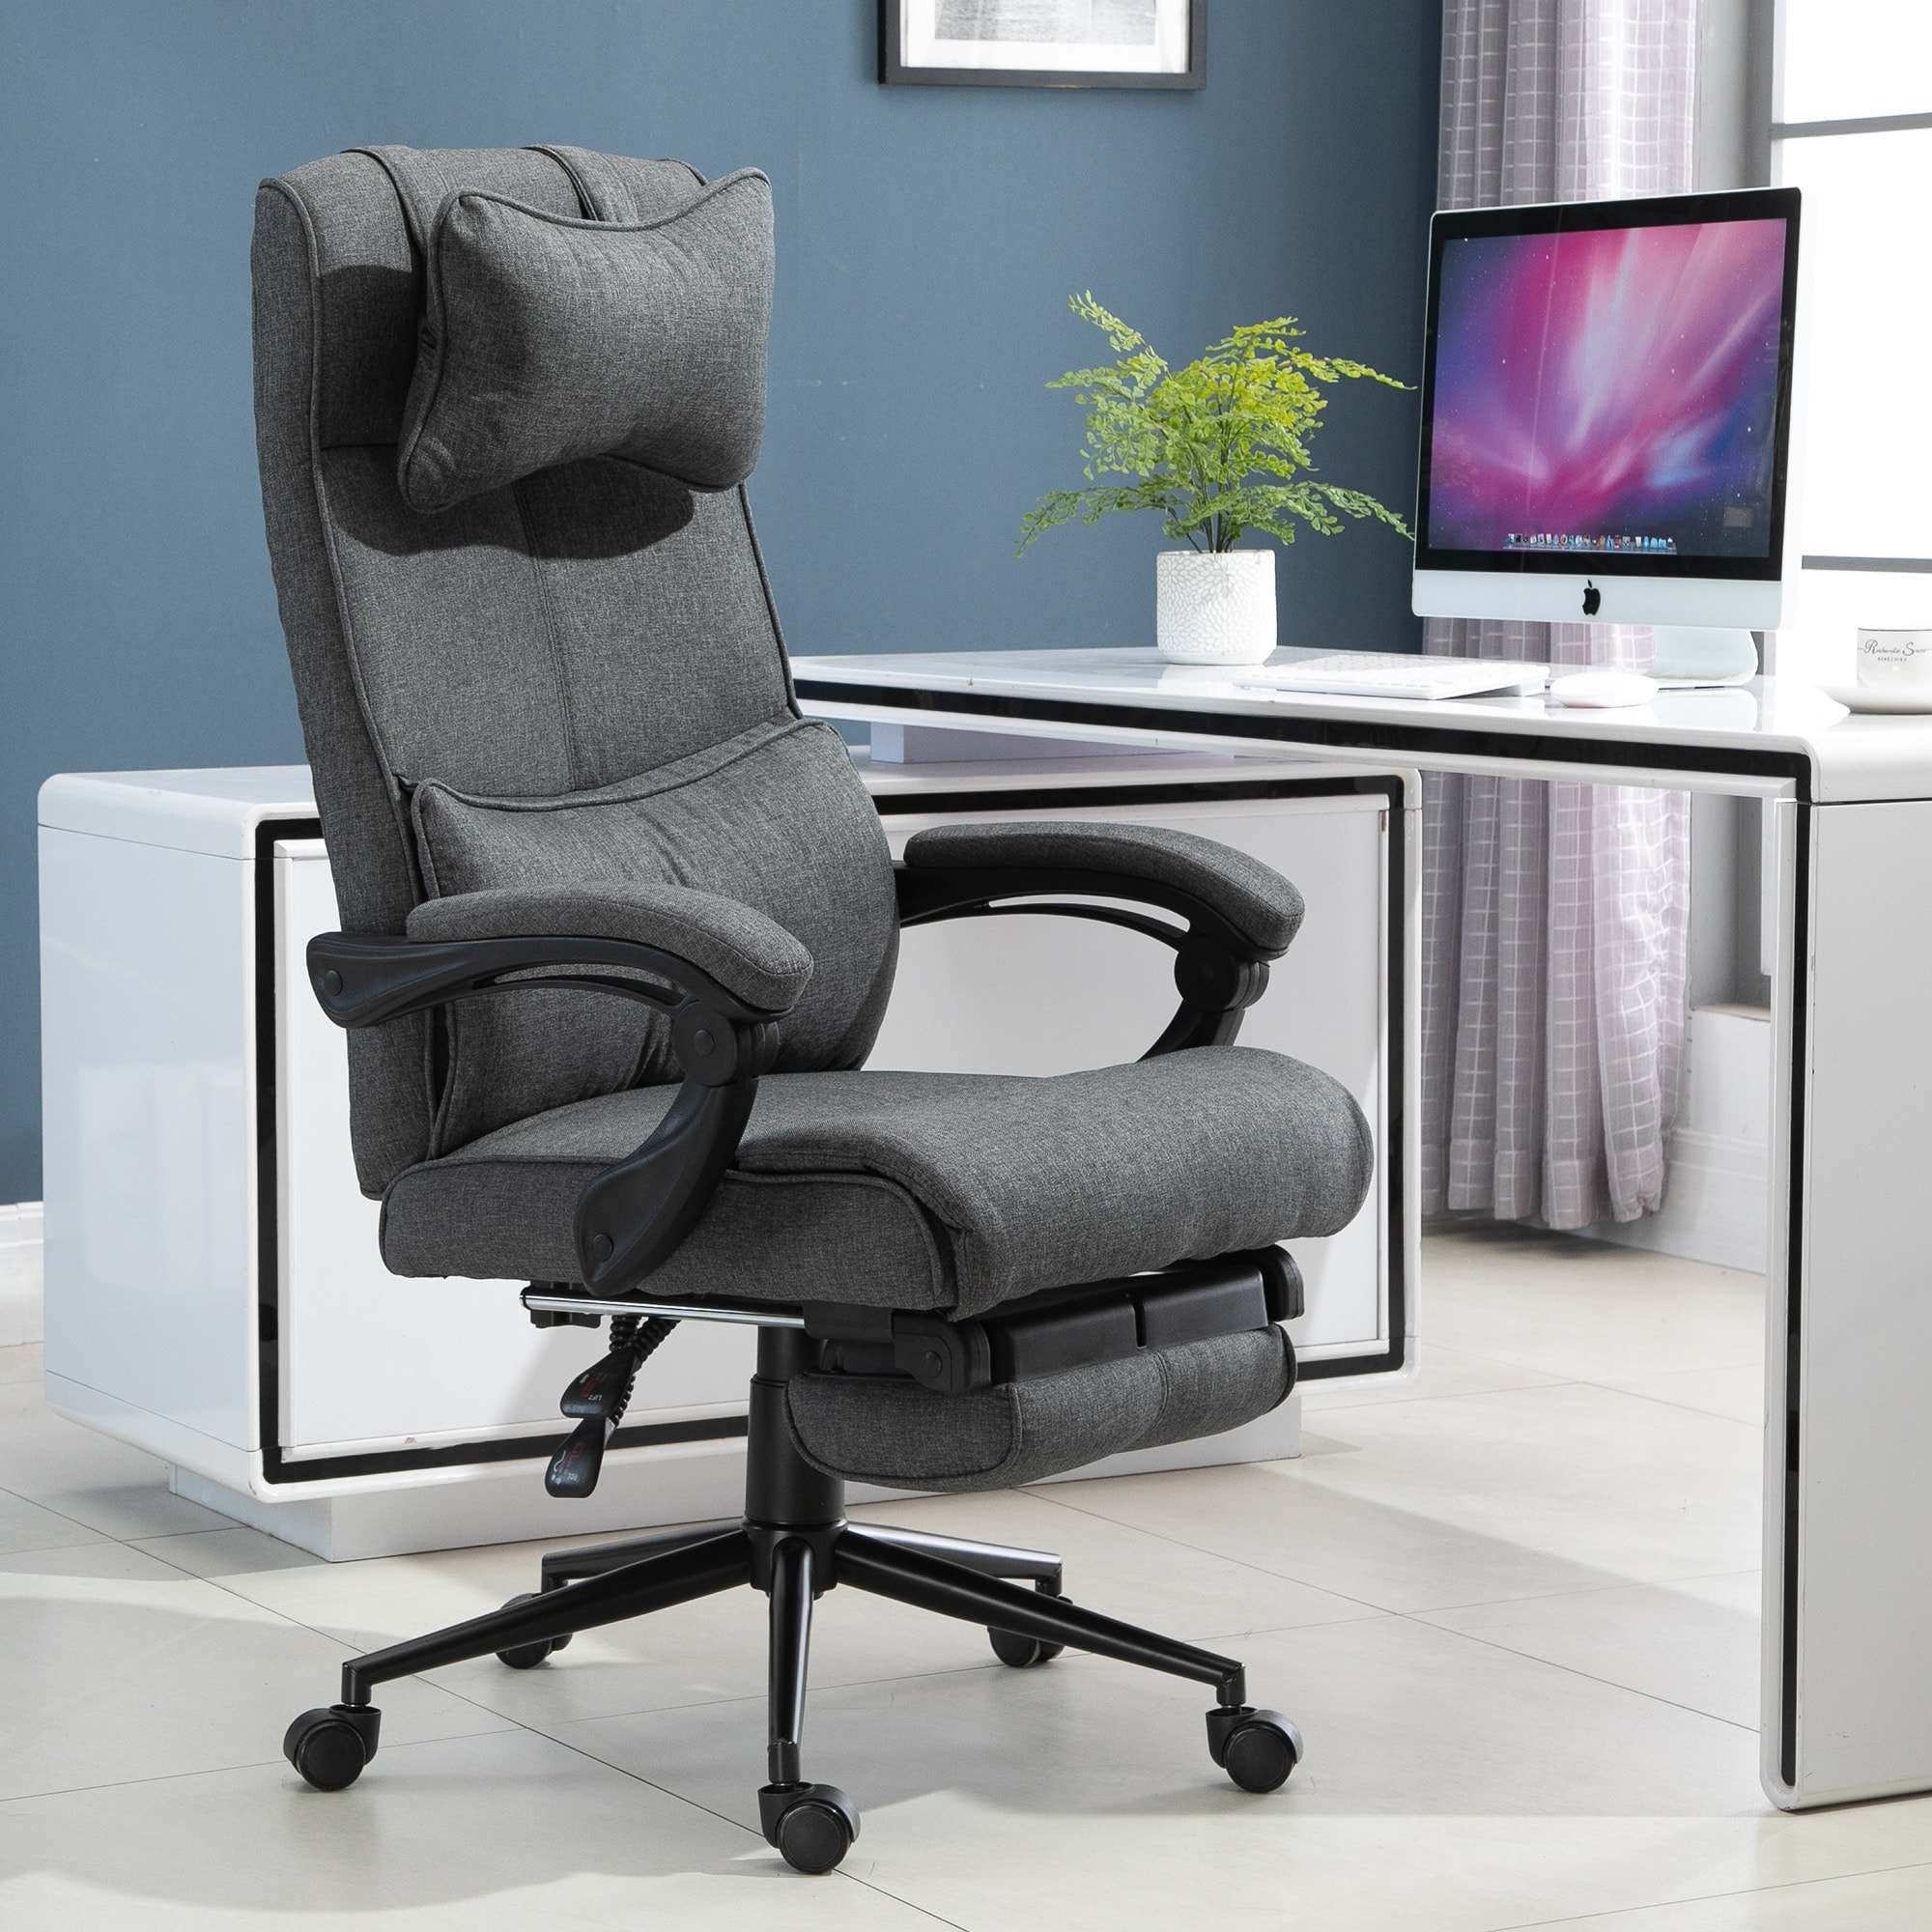 Shop Vinsetto Reclining Home Office Chair Executive Adjustable Rolling Swivel Chair With Retractable Footrest Overstock 31629423